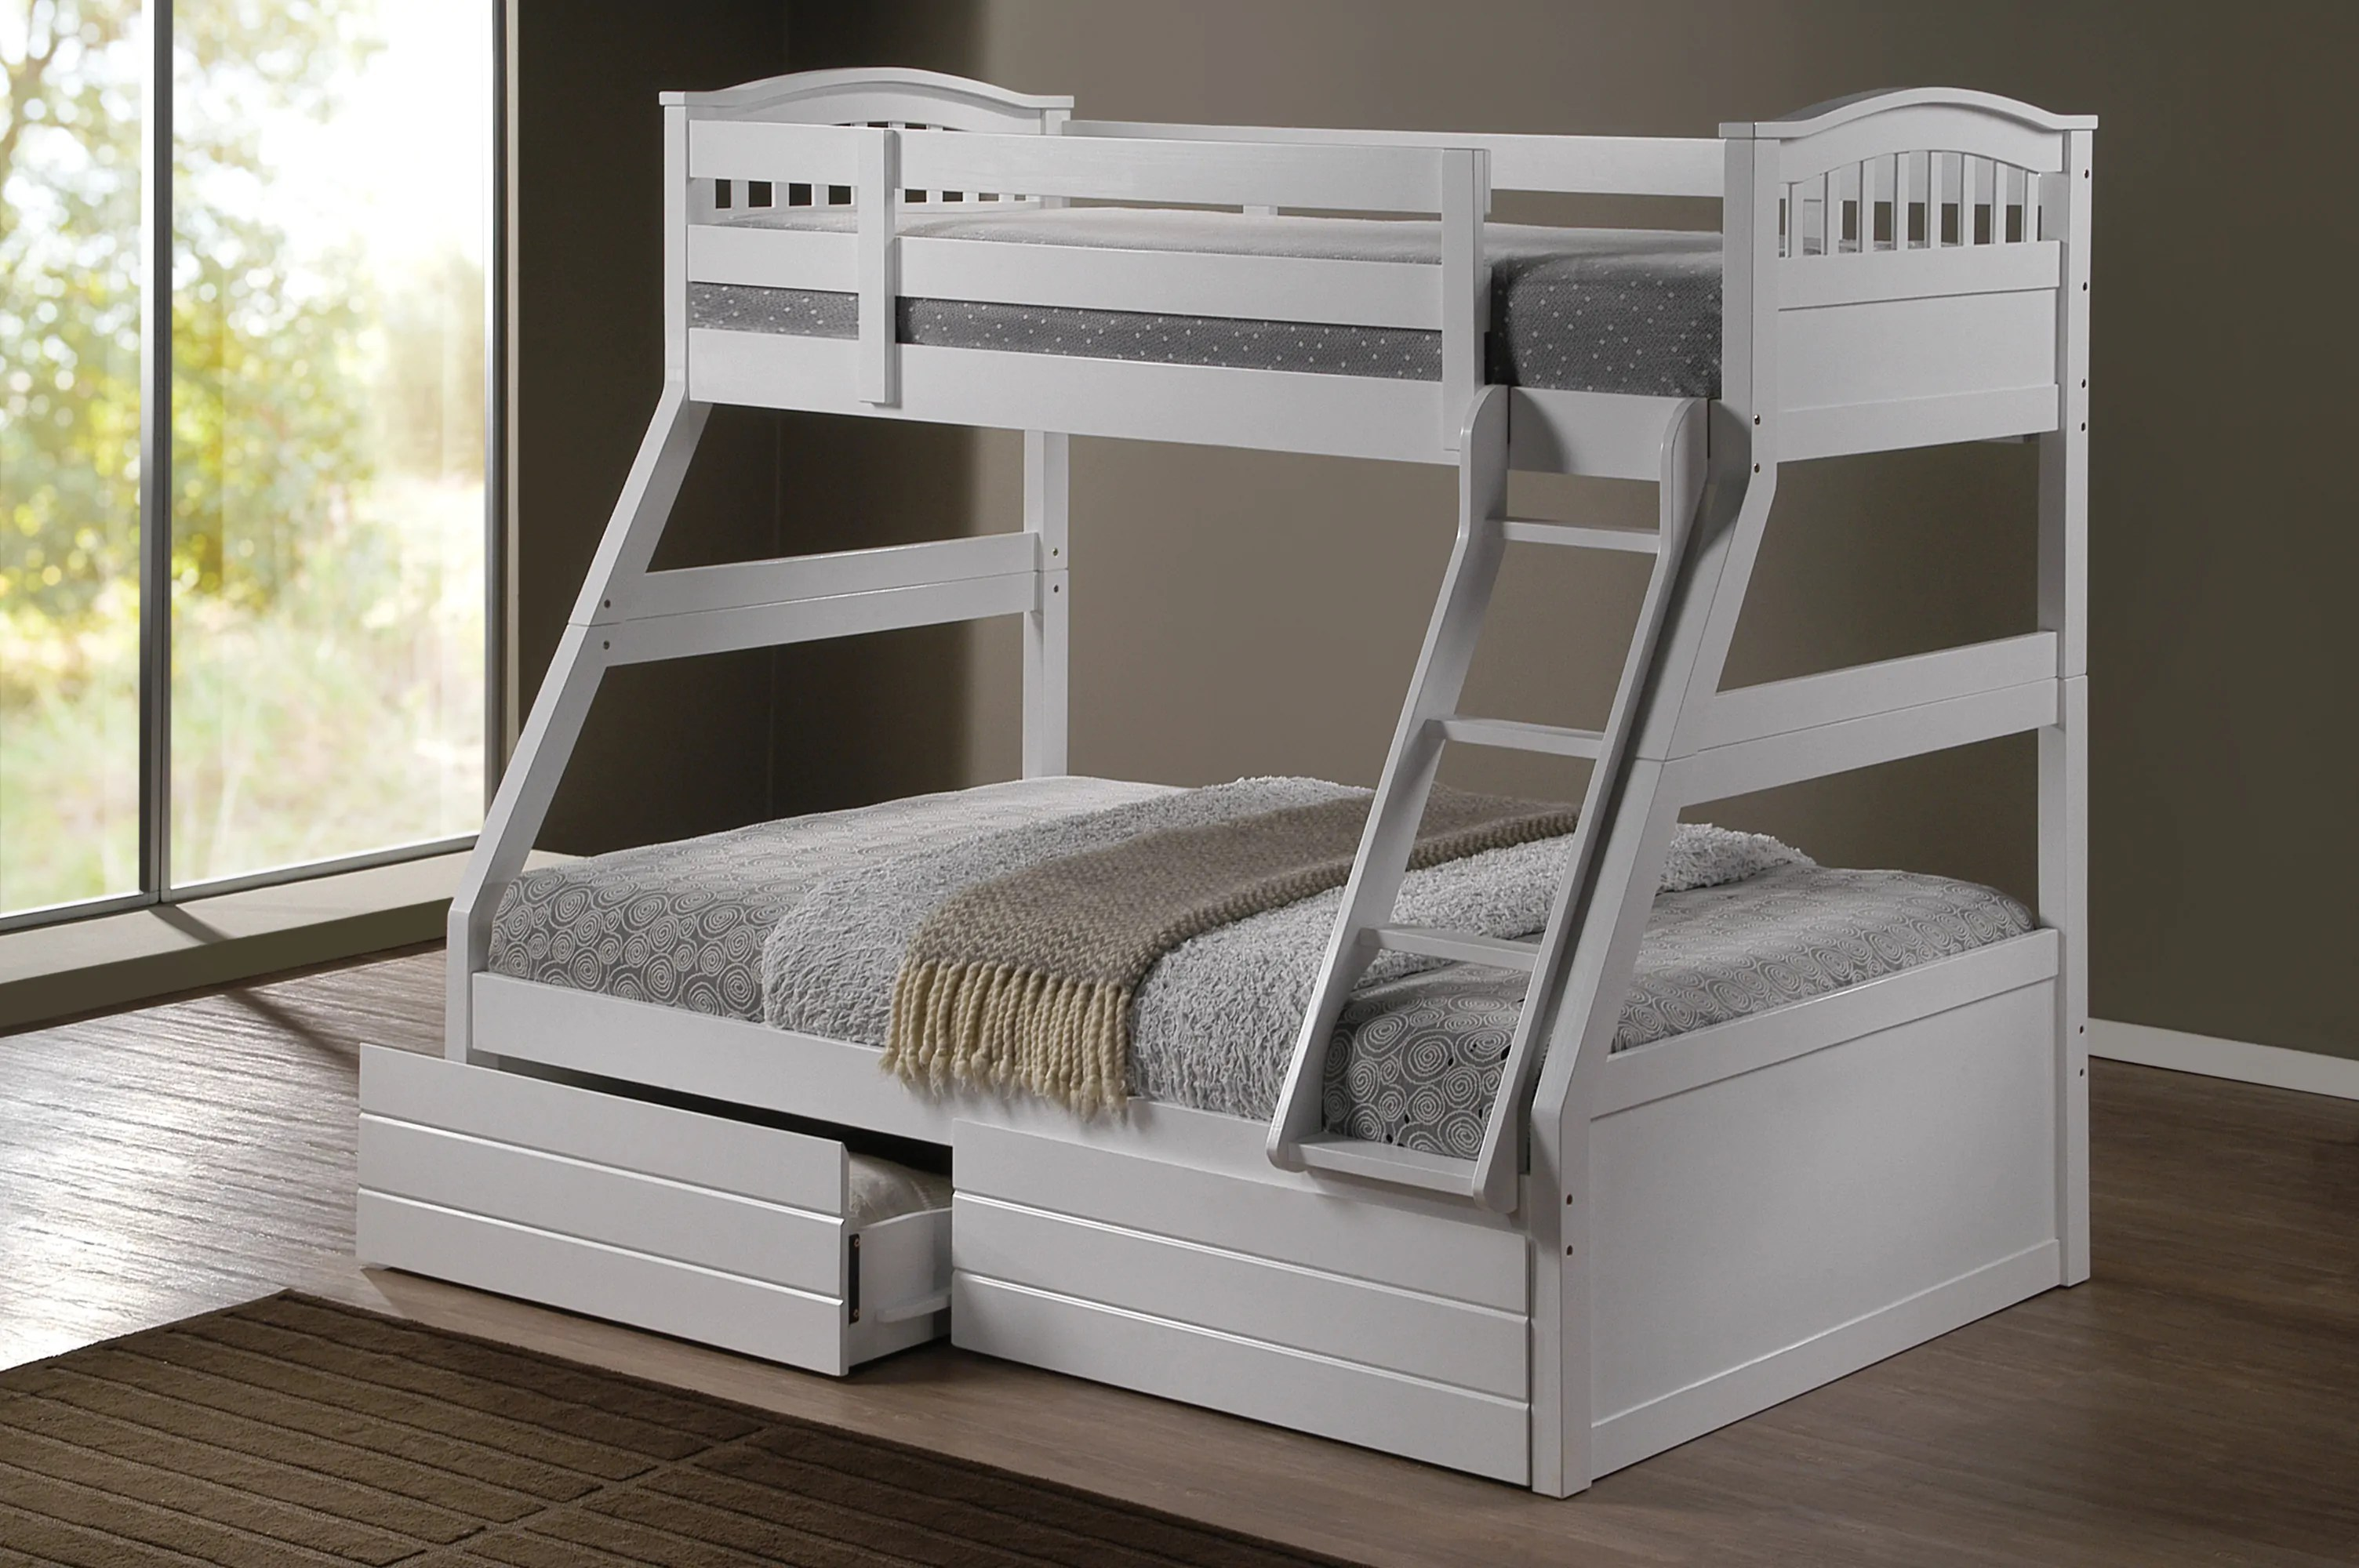 Single Beds For Sale Ashley White Duo Double Single Bunk Beds With Drawers